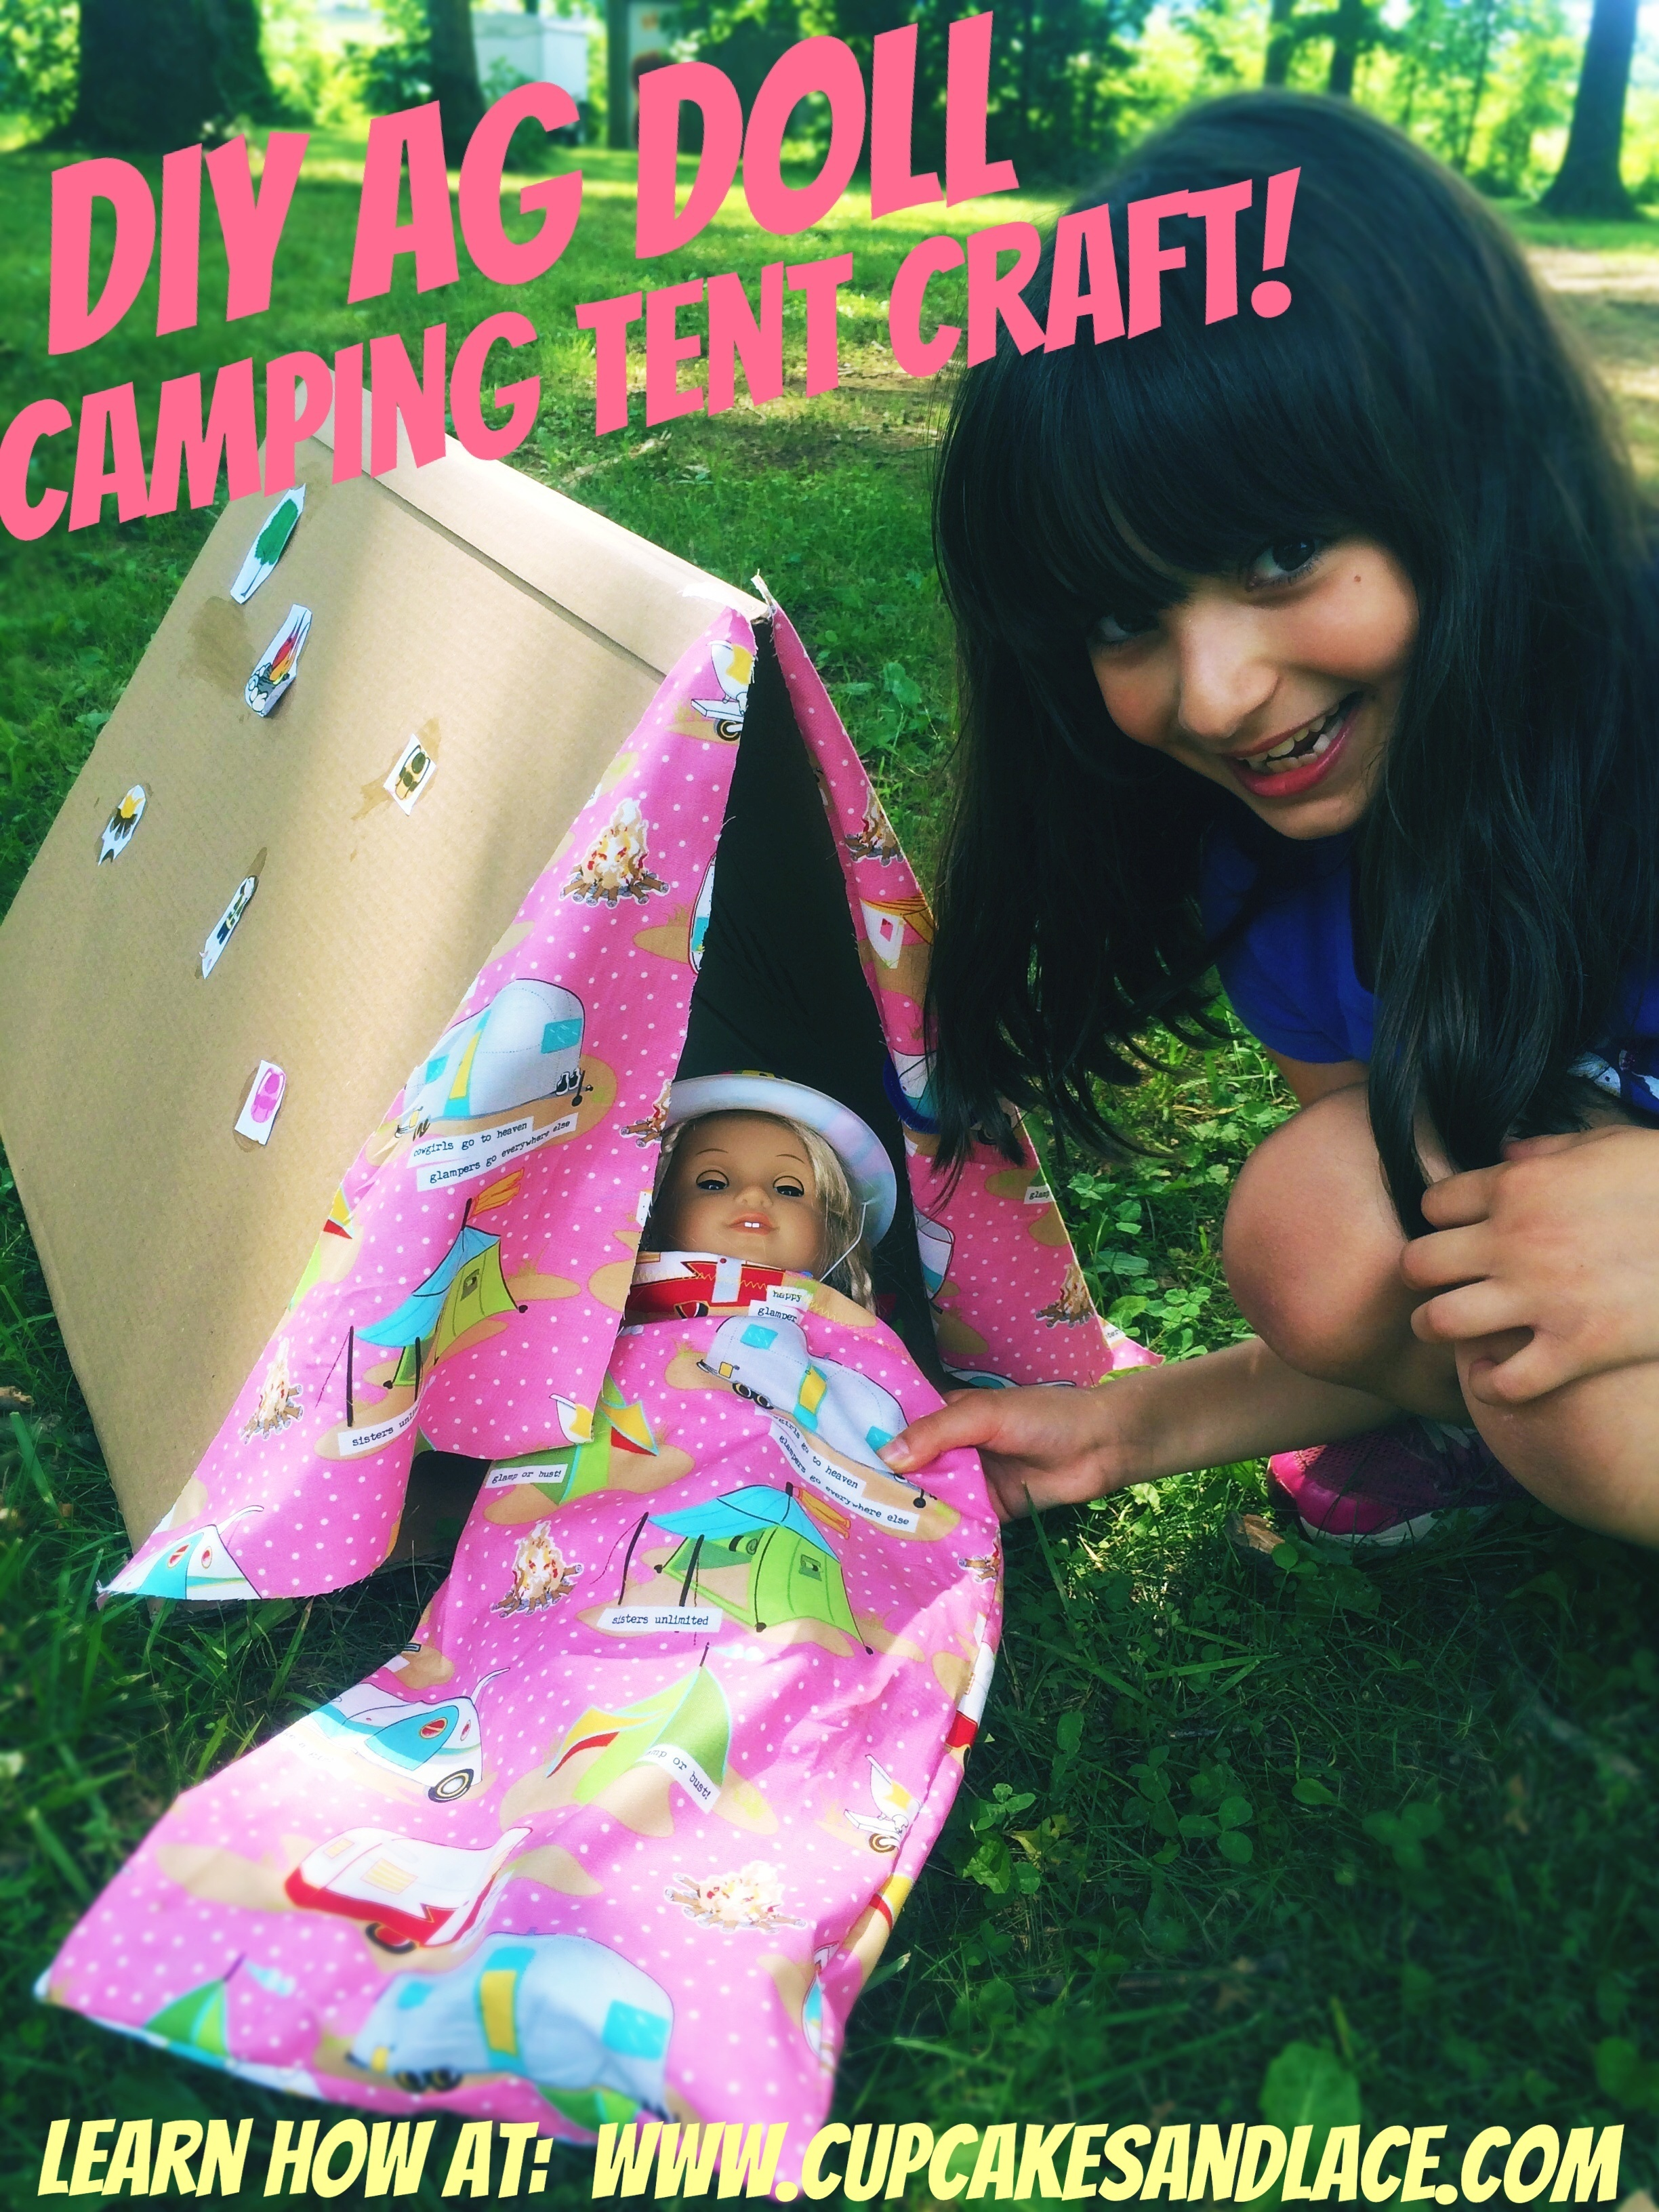 Cupcakes and lace diy 18 american girl doll camping for American girl crafts diy